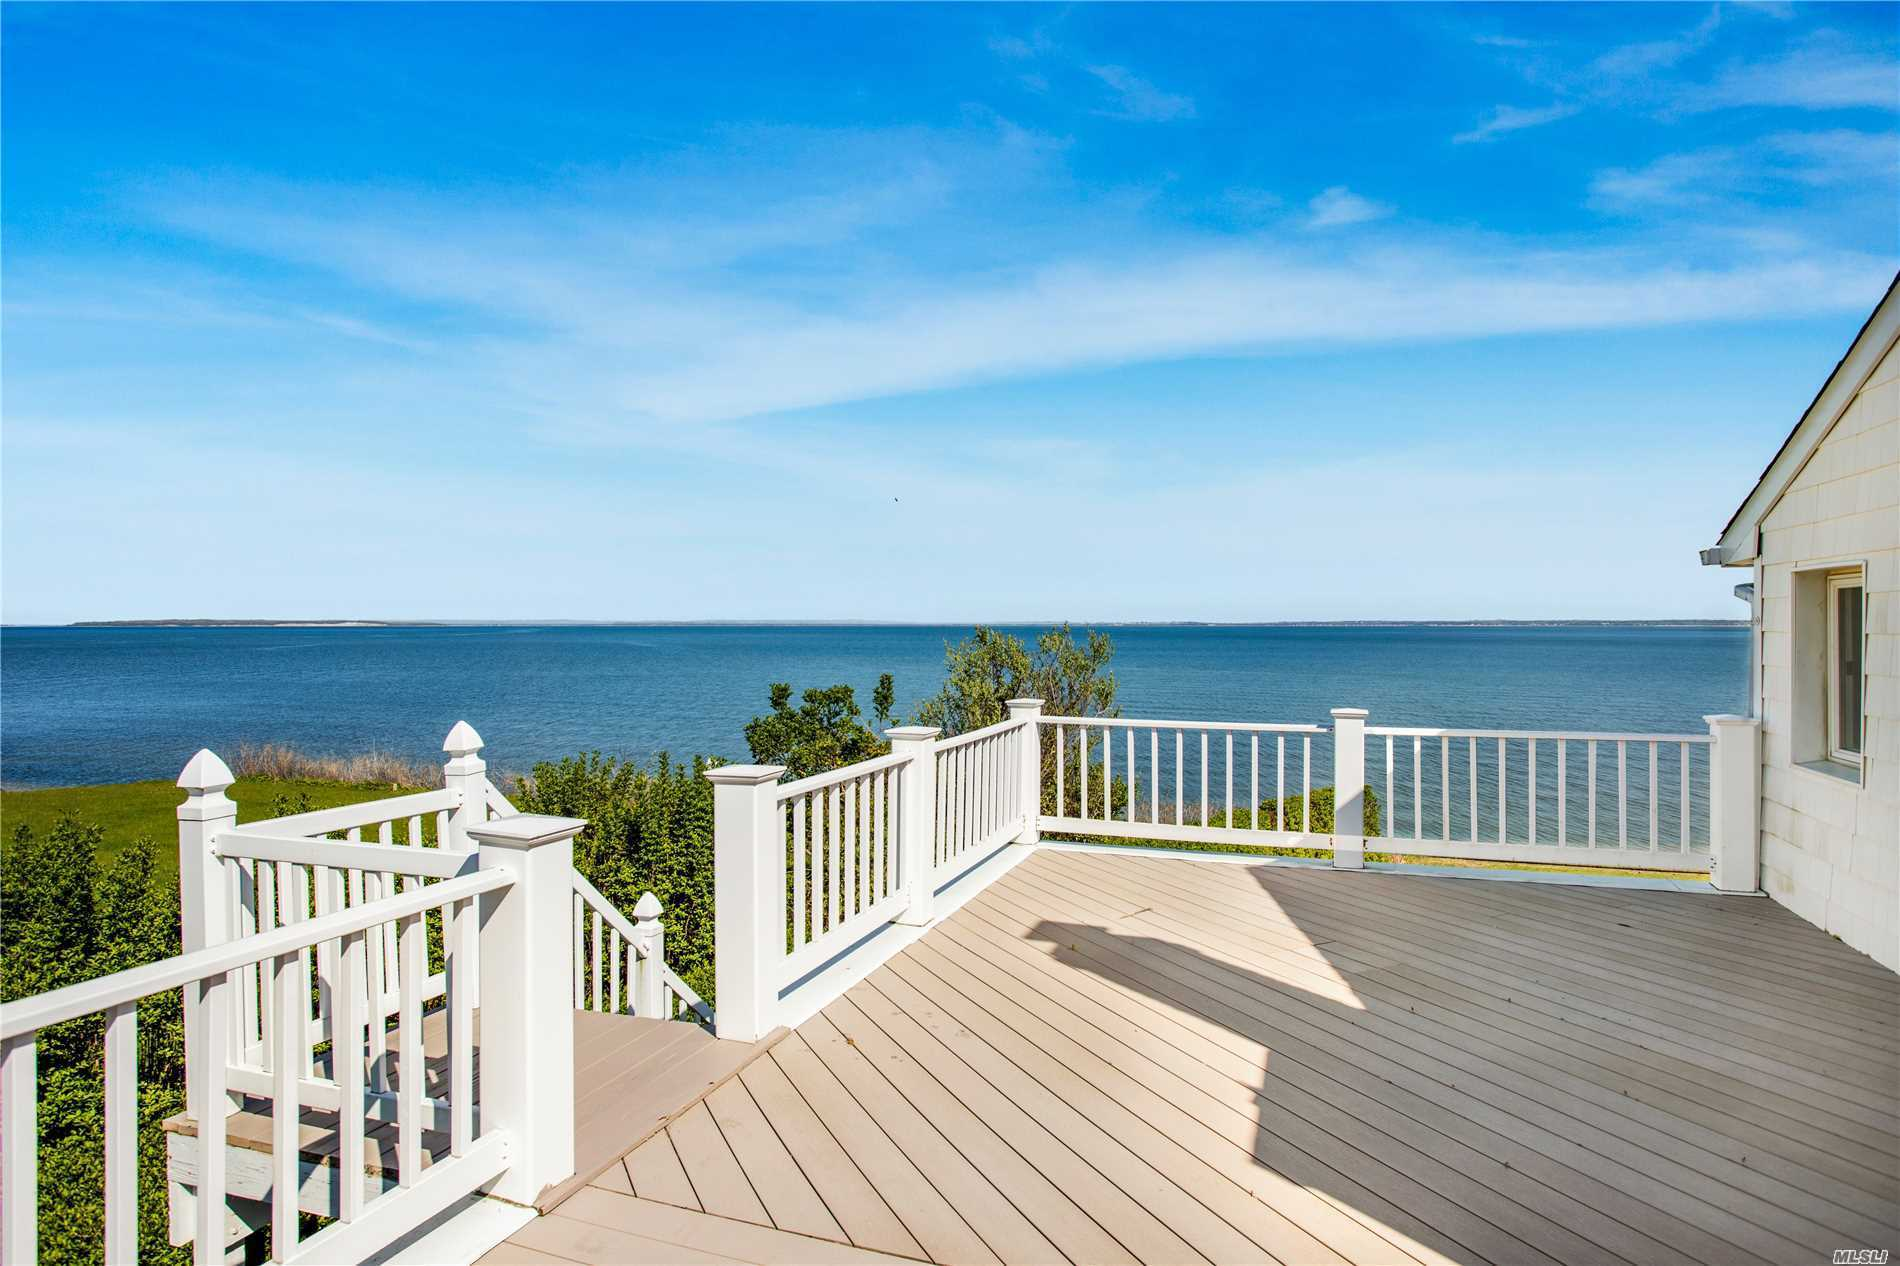 Pristine Peconic Bayfront Gem! You've found your secluded slice of heaven, in this 4 bed/3 bath home, nestled at end of a private road, off of Peconic Bay Blvd. With 127'.72 of bulkhead & mere steps down to your own private sandy beachfront, the ultimate waterfront North Shore lifestyle is yours to enjoy. Savor breathtaking open views of the Peconic Bay from your expansive & lush waterside lawn. Perfect for summer parties, or relax on the topside deck feeling as if your in a world of your own!